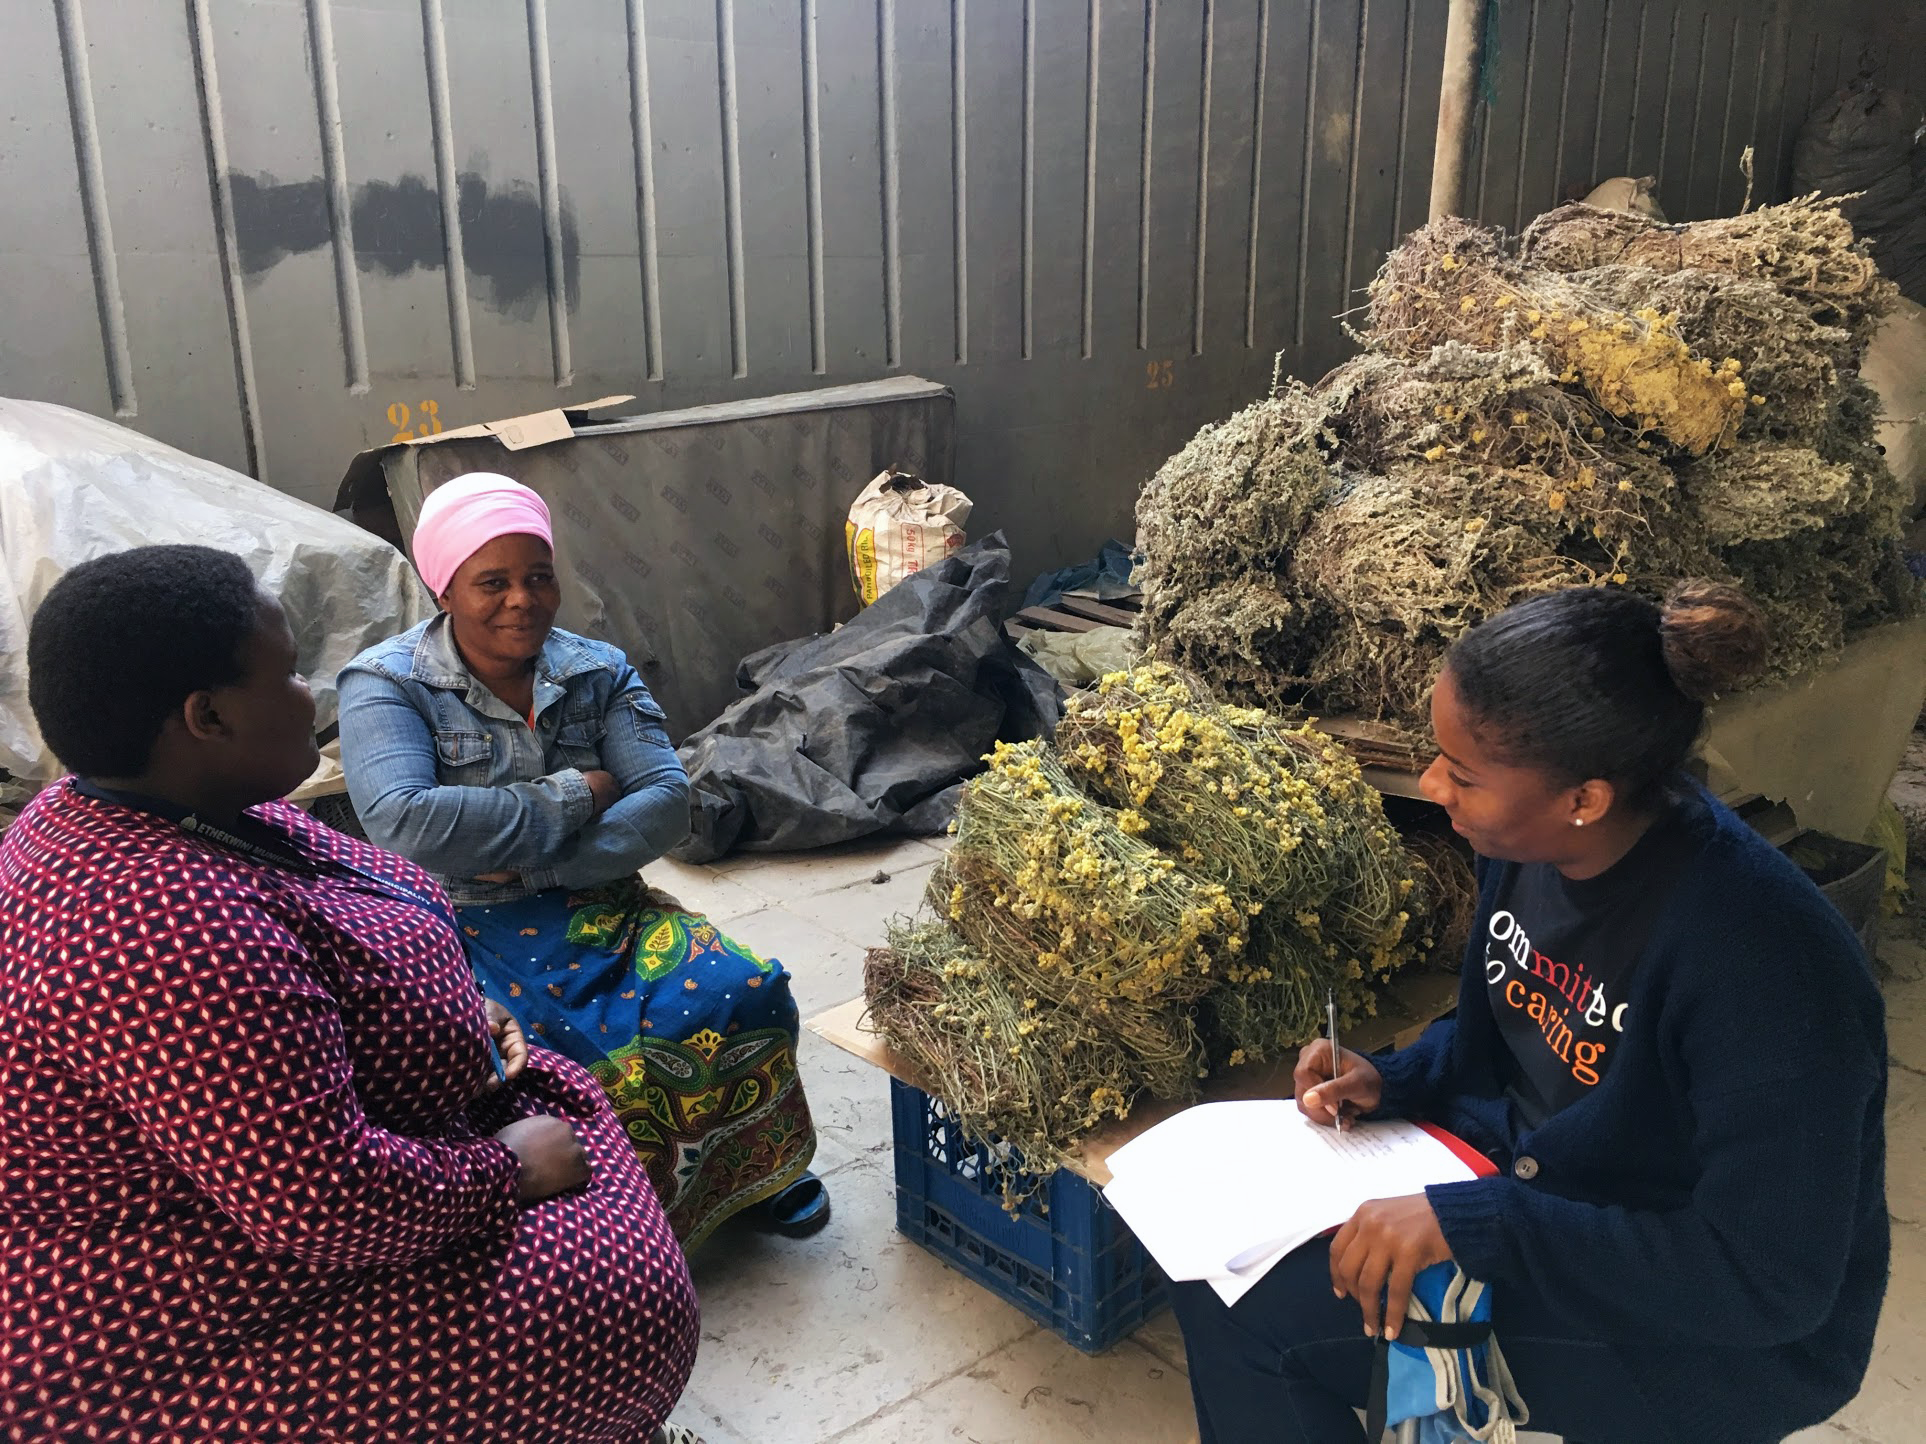 Nompumelelo and Ayna (MCP '18) discuss current work site conditions with an Impepho vendor in Durban, South Africa.